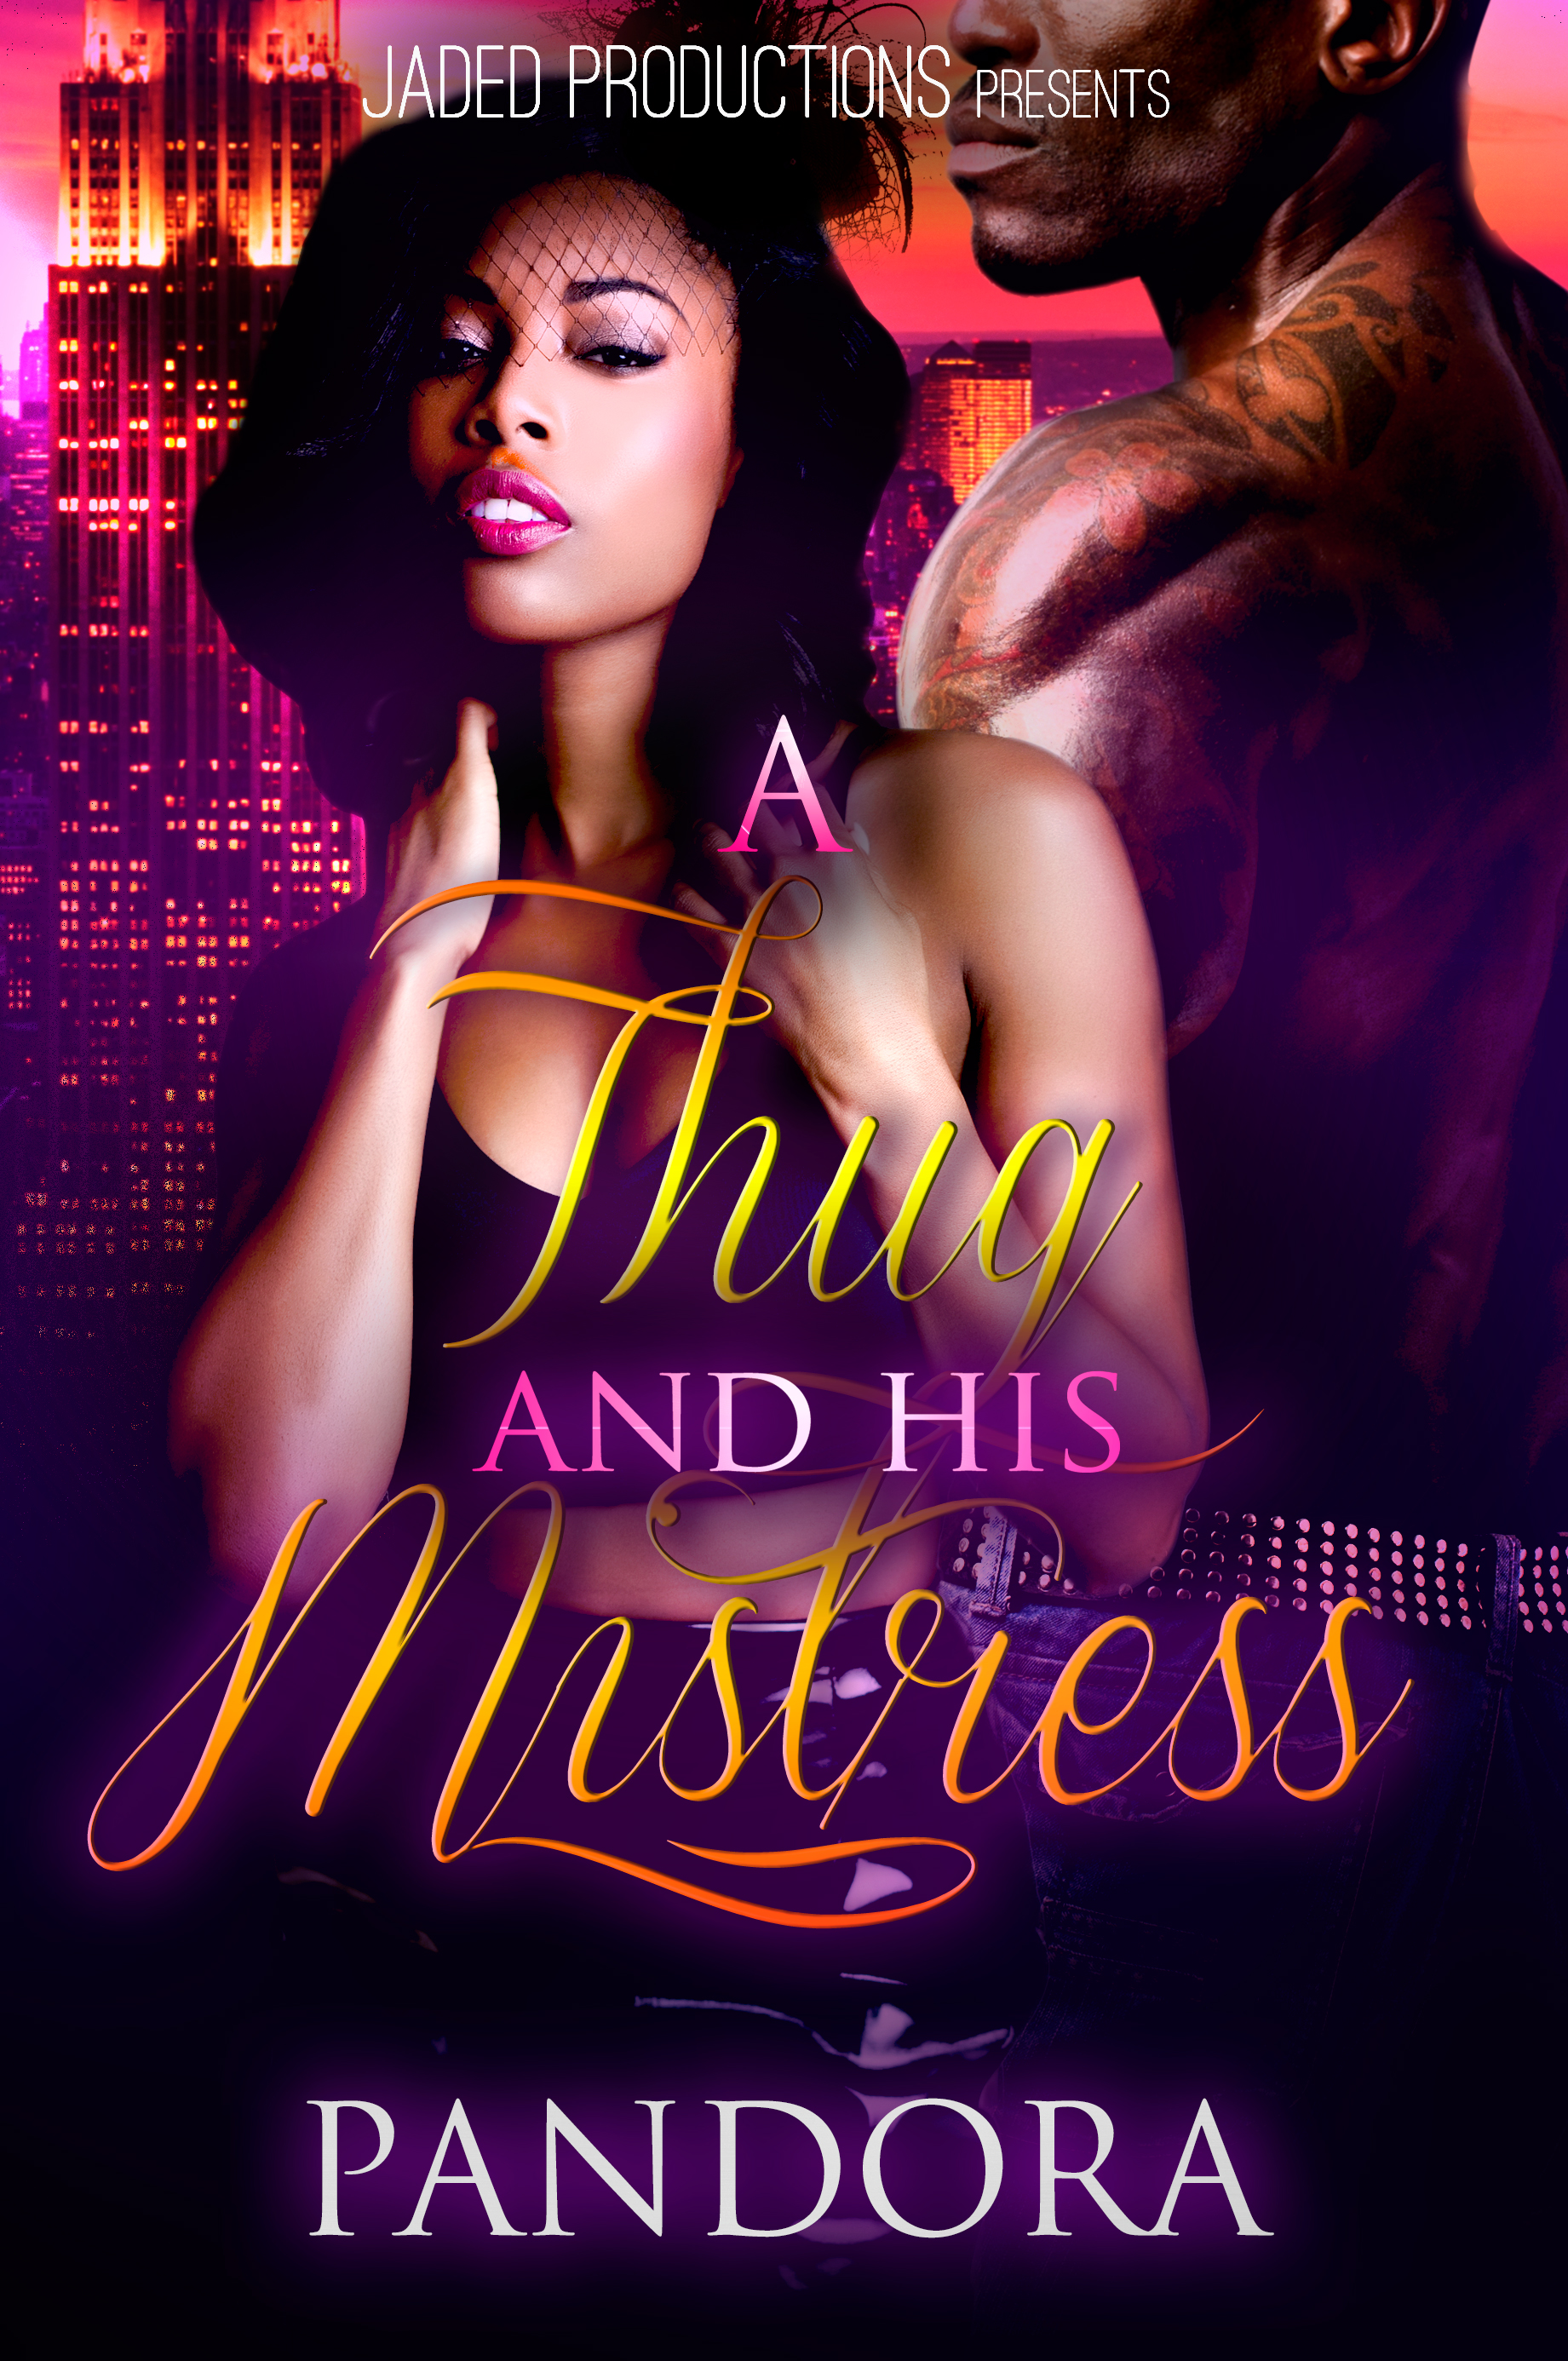 A Thug and His Mistress by Pandora